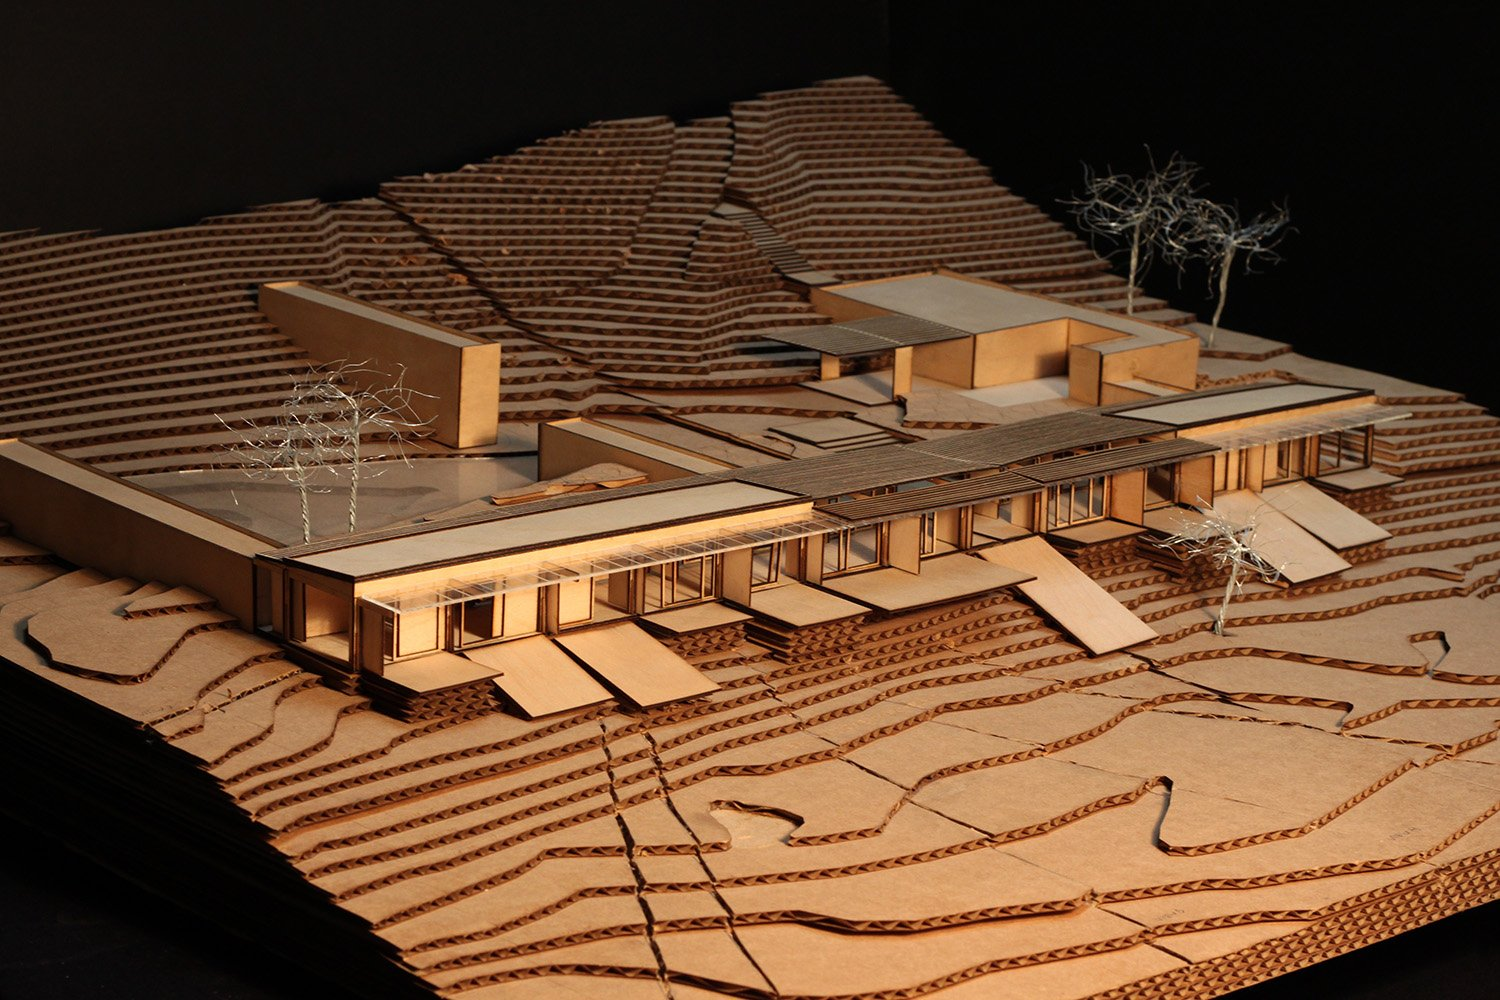 Early design process model in laser cut wood and cardboard to study integration of structure into the sloping site. View from southeast. Anderson Anderson Architecture}